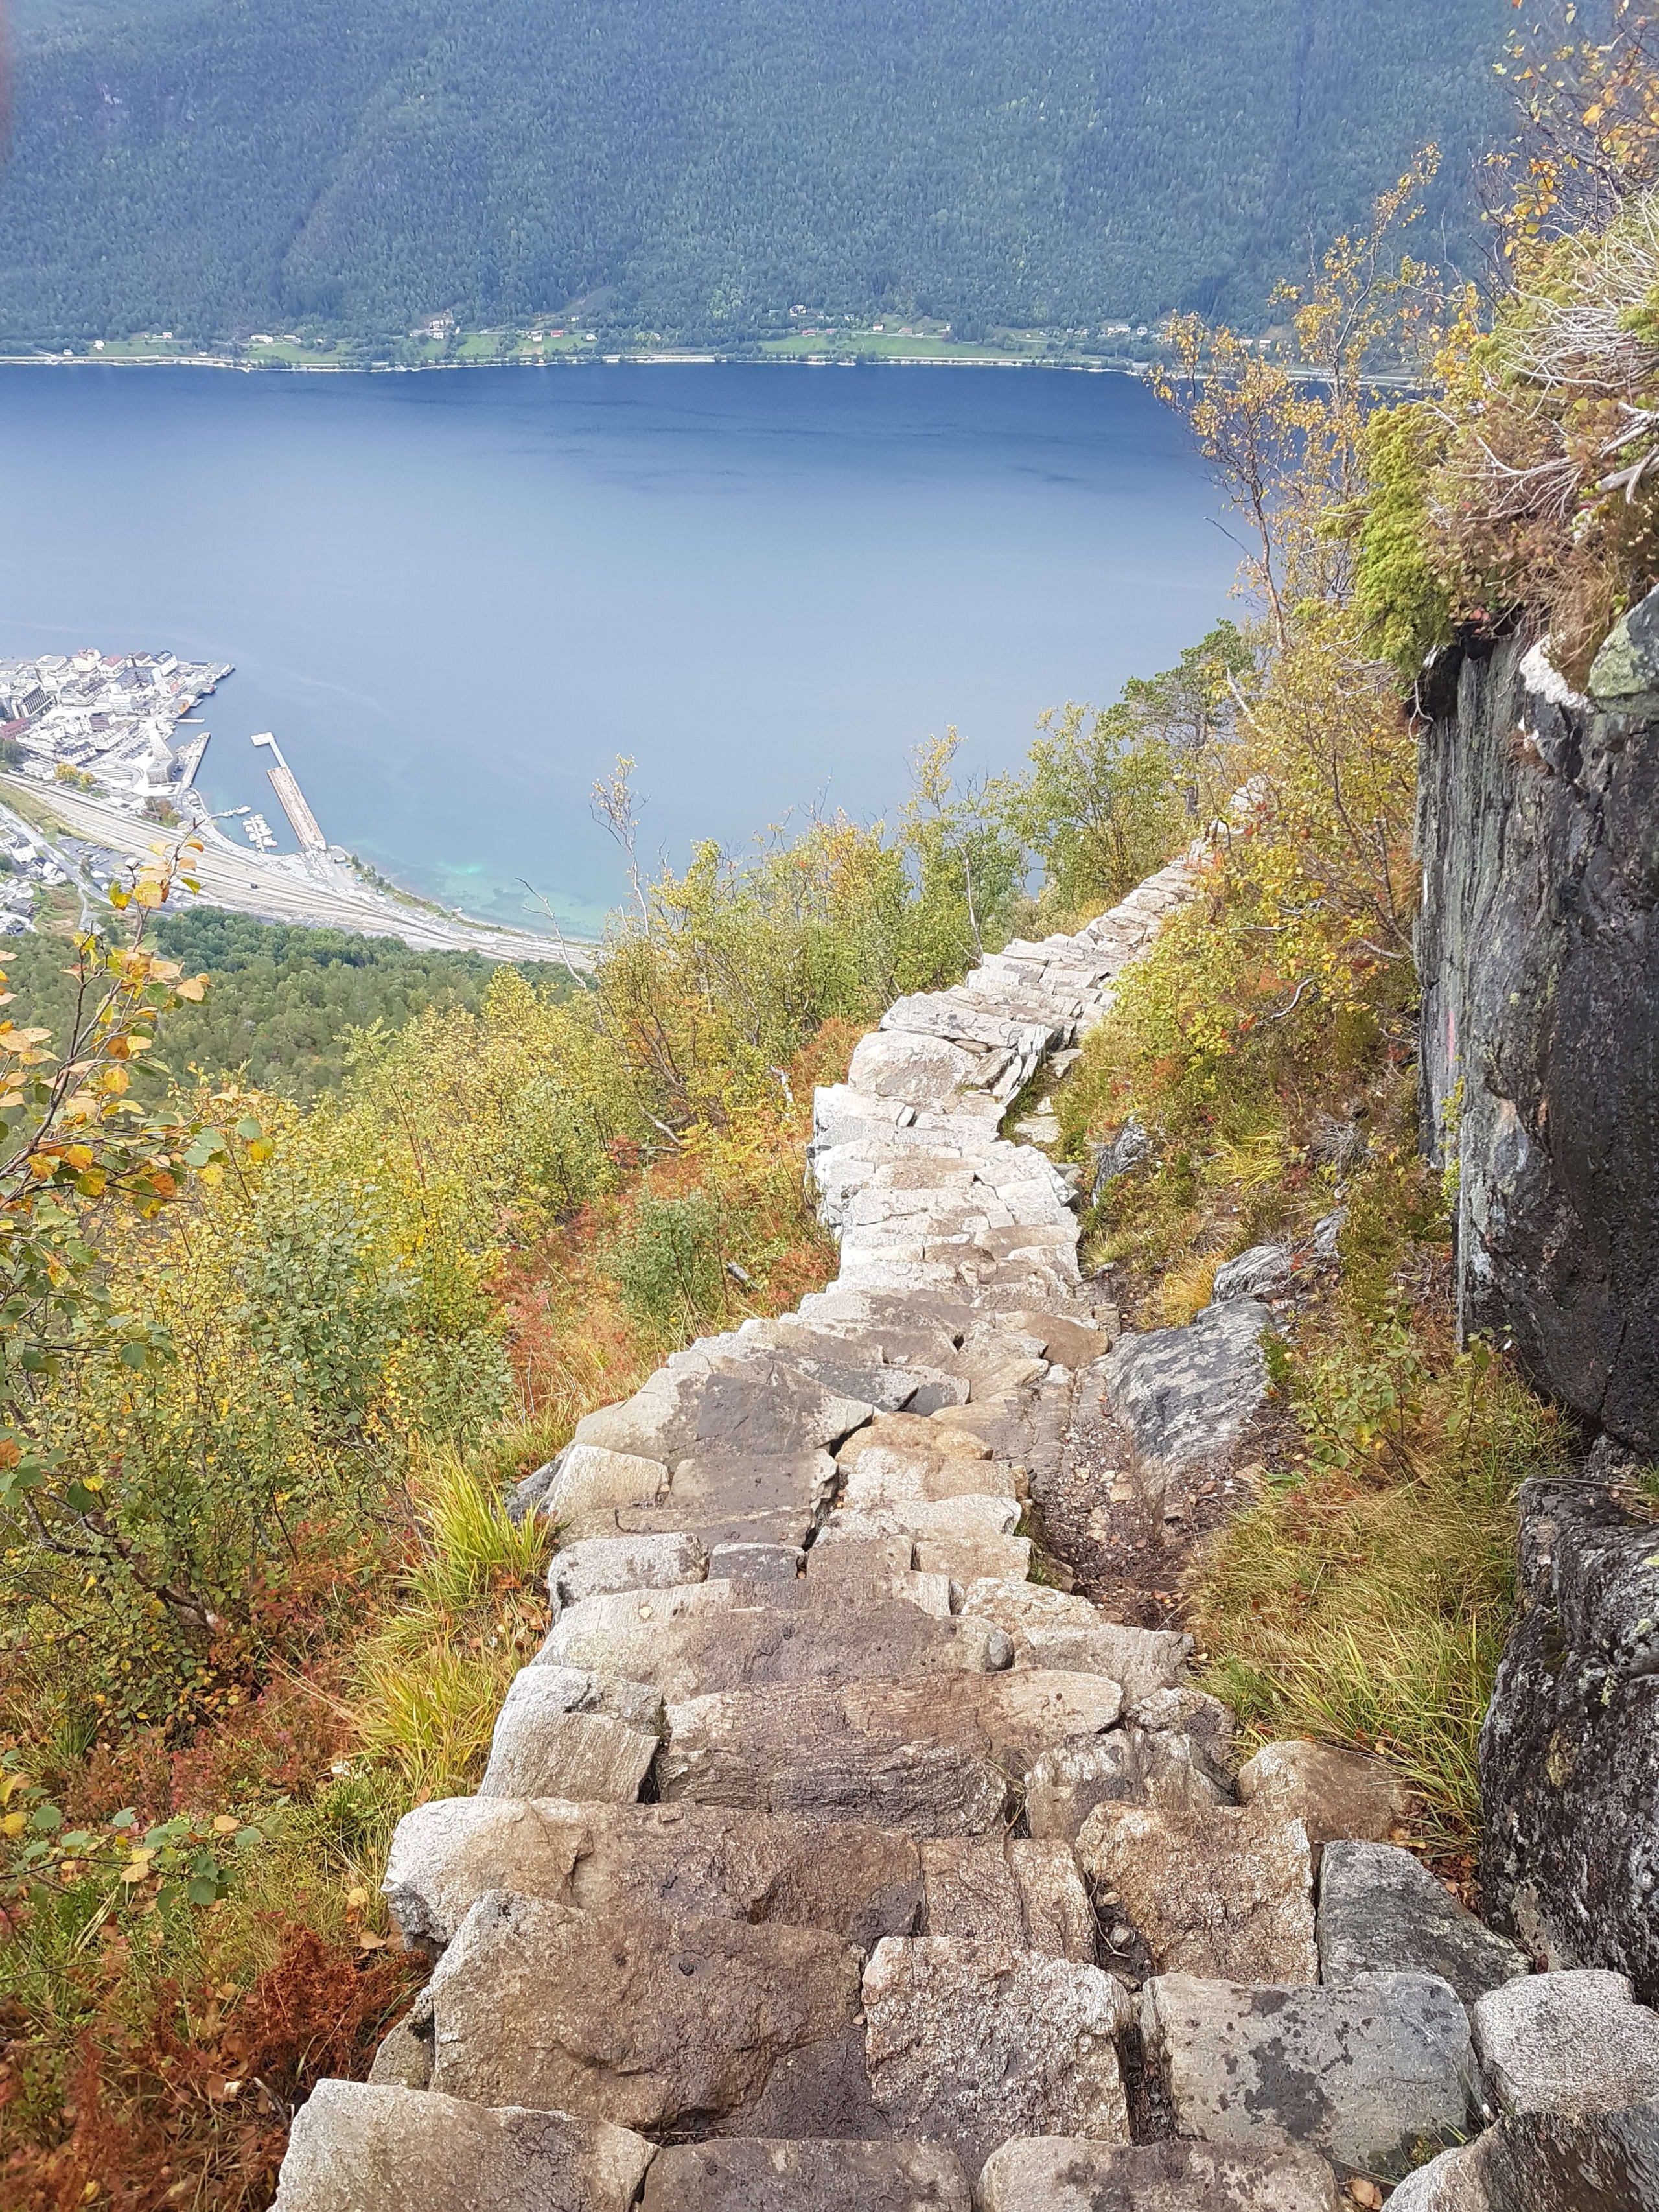 Stone path laid by mountain Sherpas